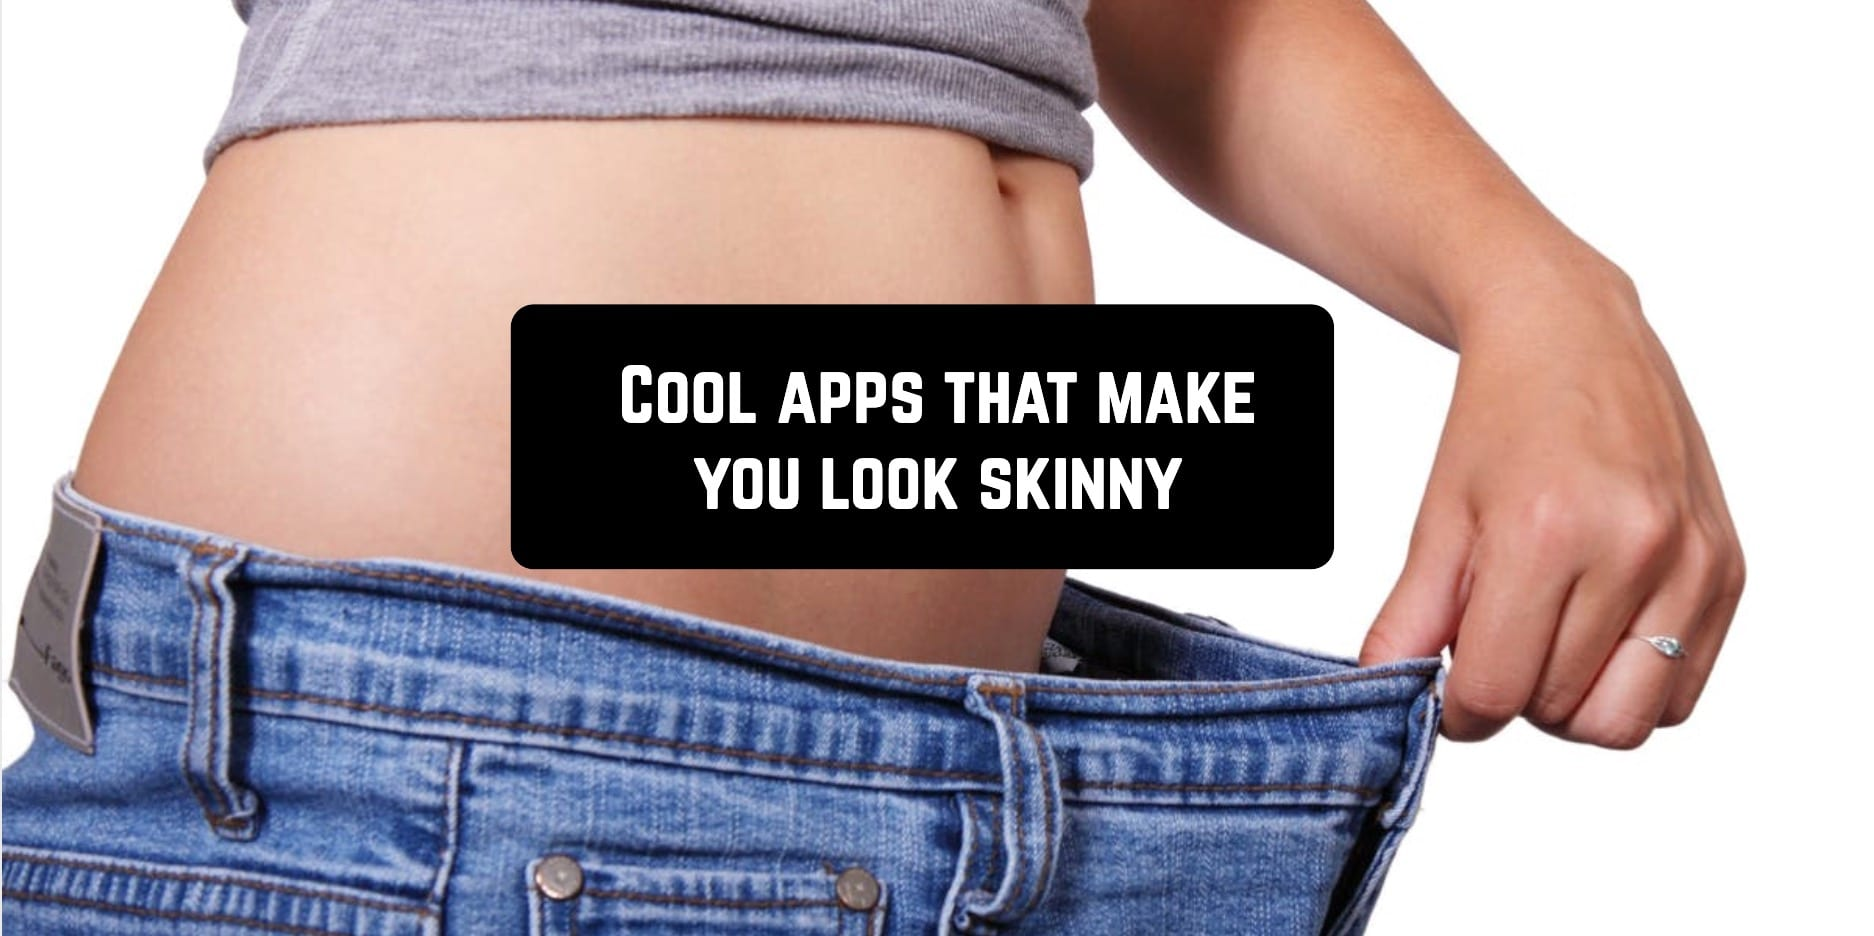 Cool apps that make you look skinny